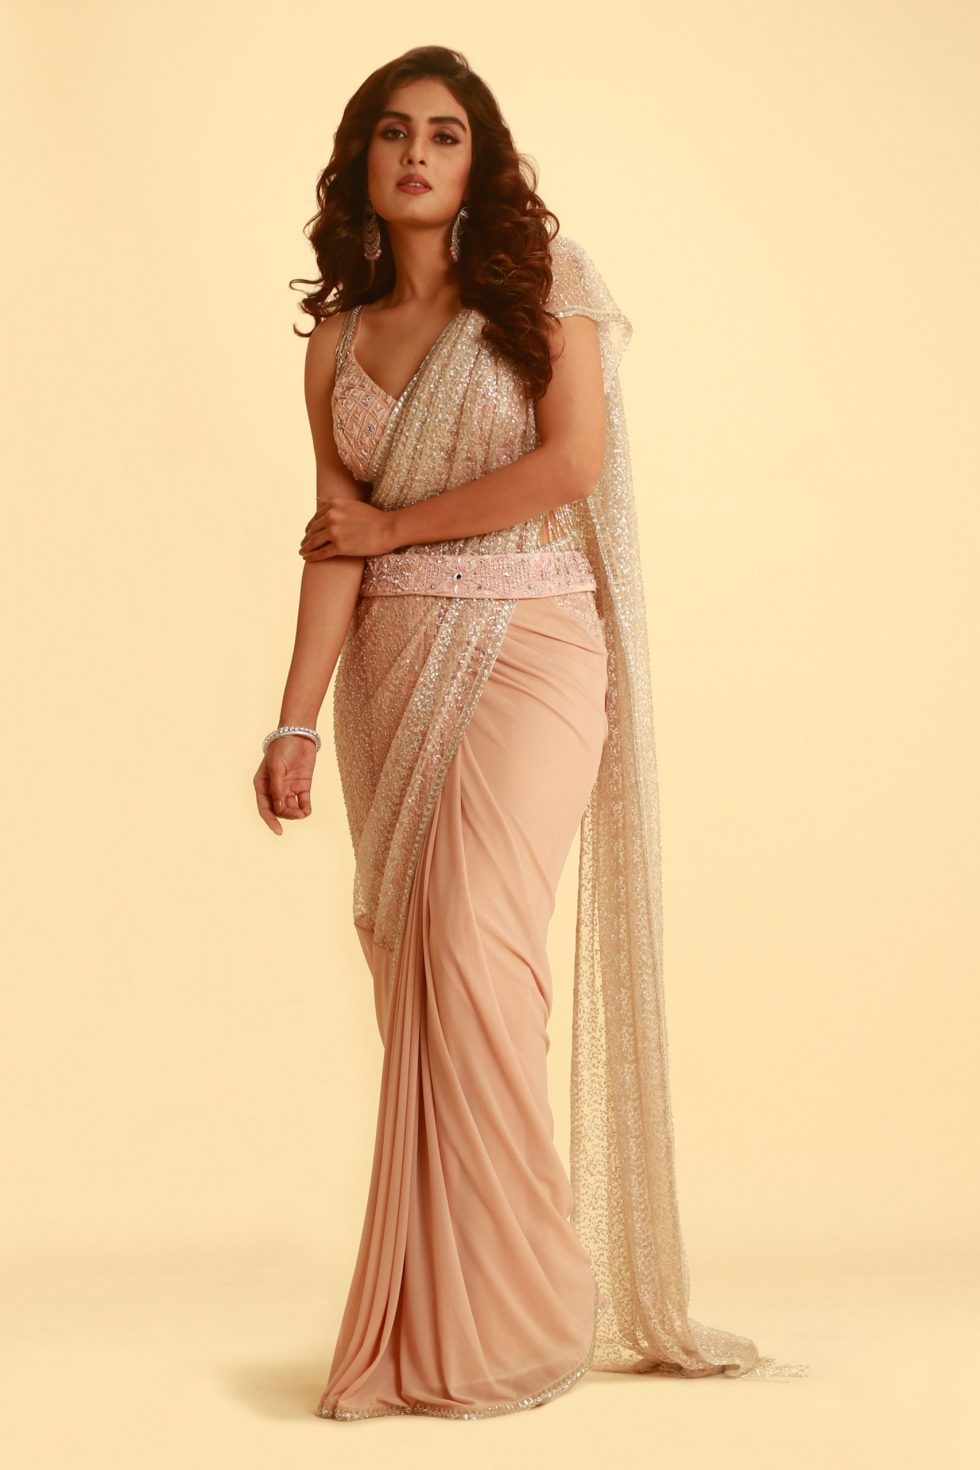 Baby pink saree with beaded pallu and matching cut out blouse with tassels